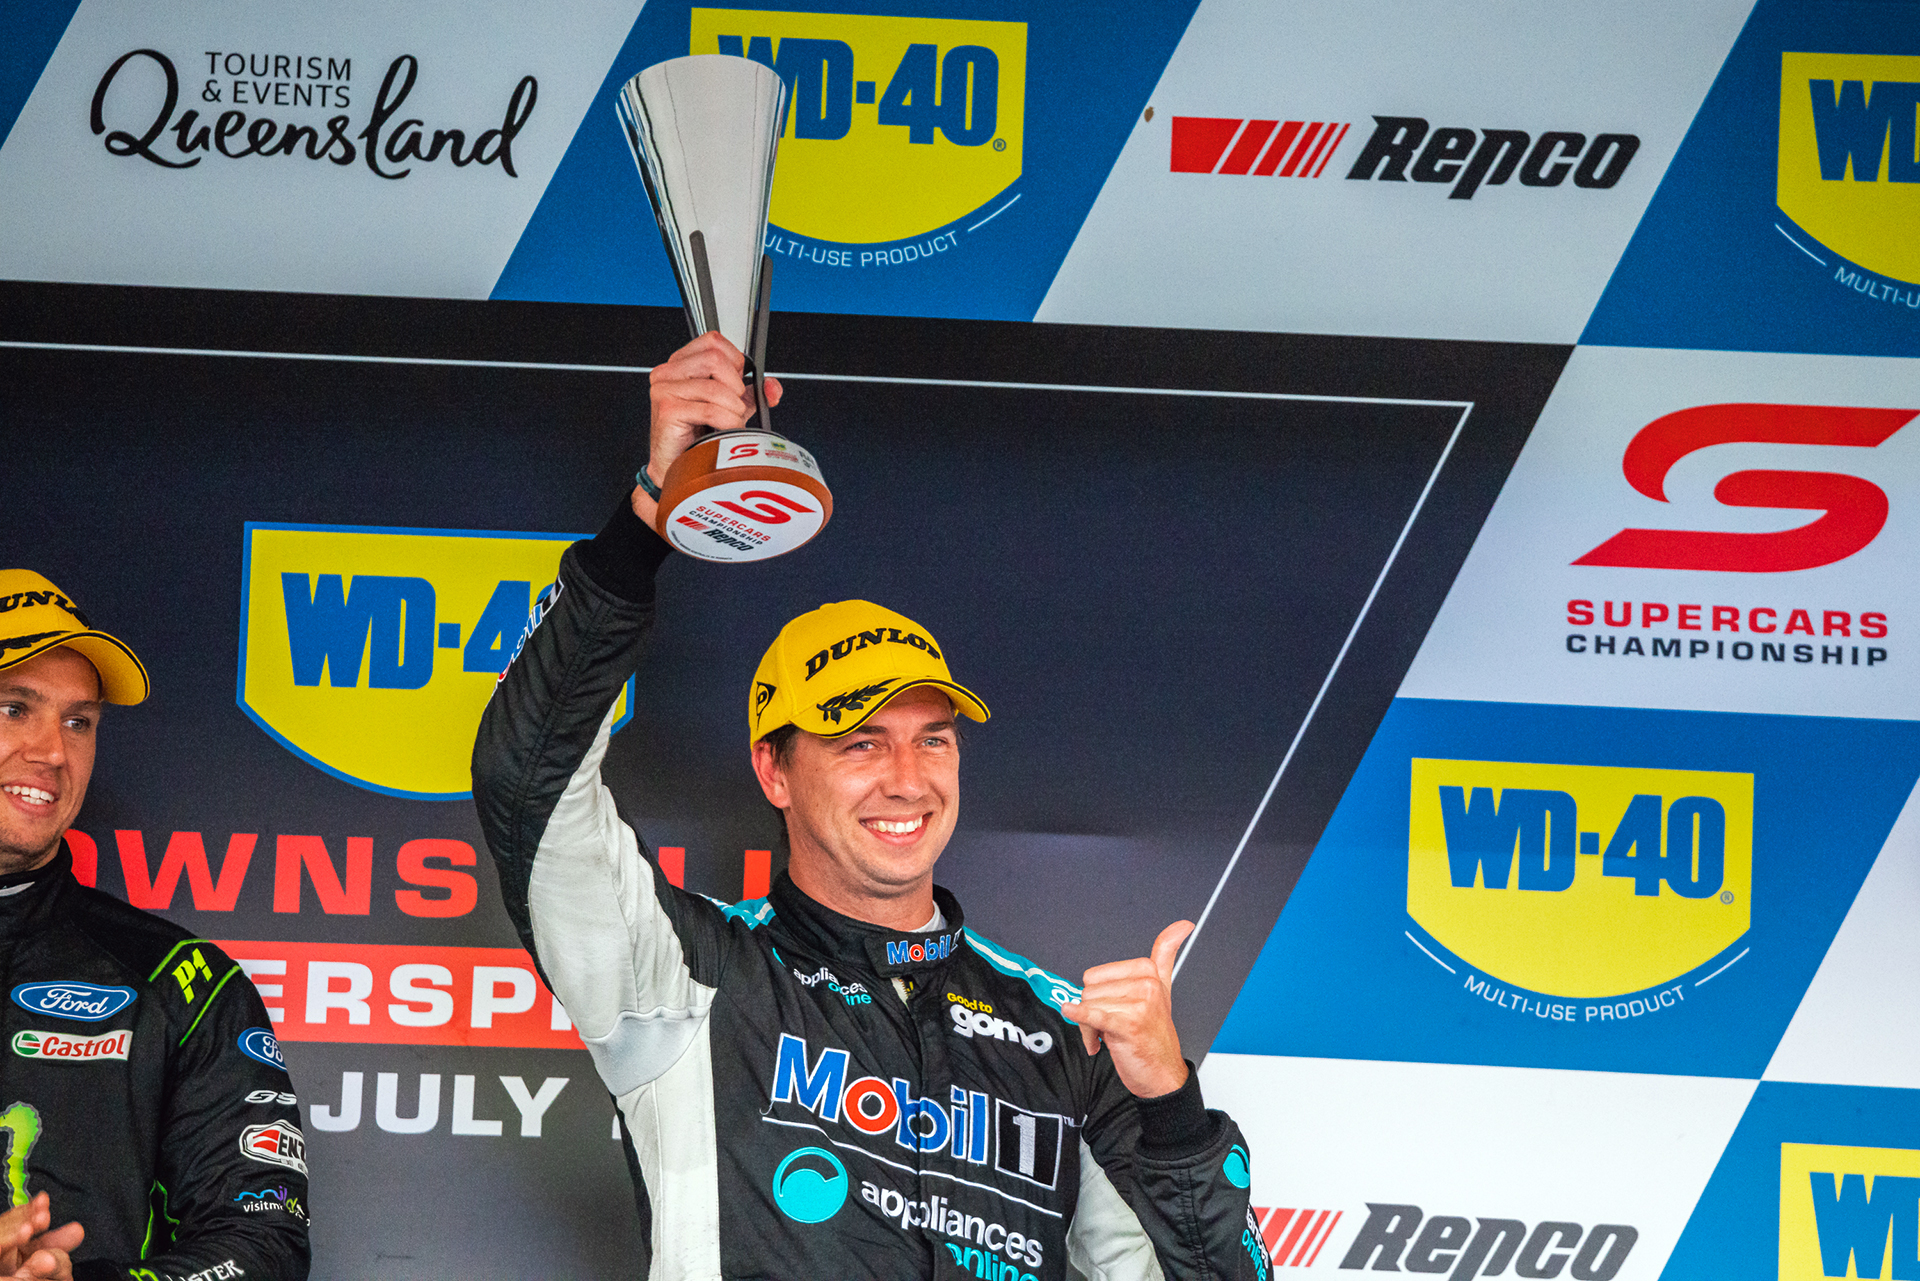 Mostert claimed his 6th podium of 2021.